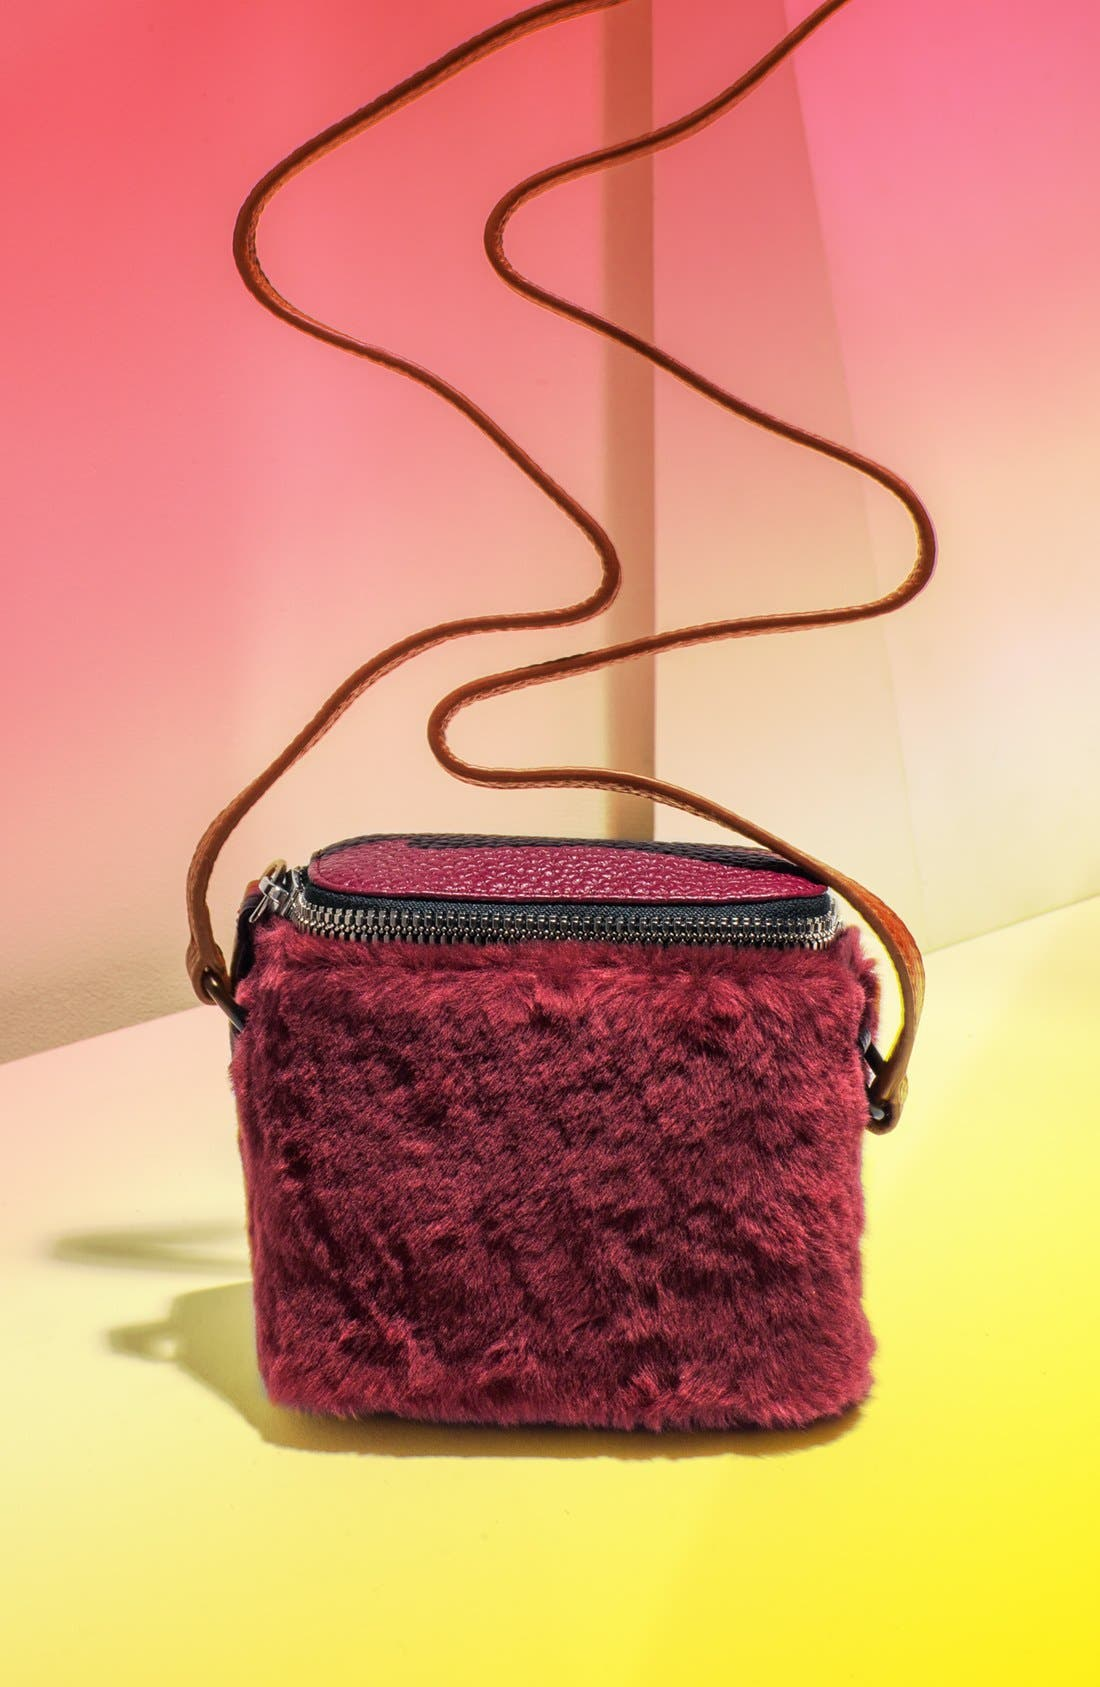 Alternate Image 1 Selected - Kara 'Stowaway' Pebbled Leather & Genuine Shearling Crossbody Bag, Small